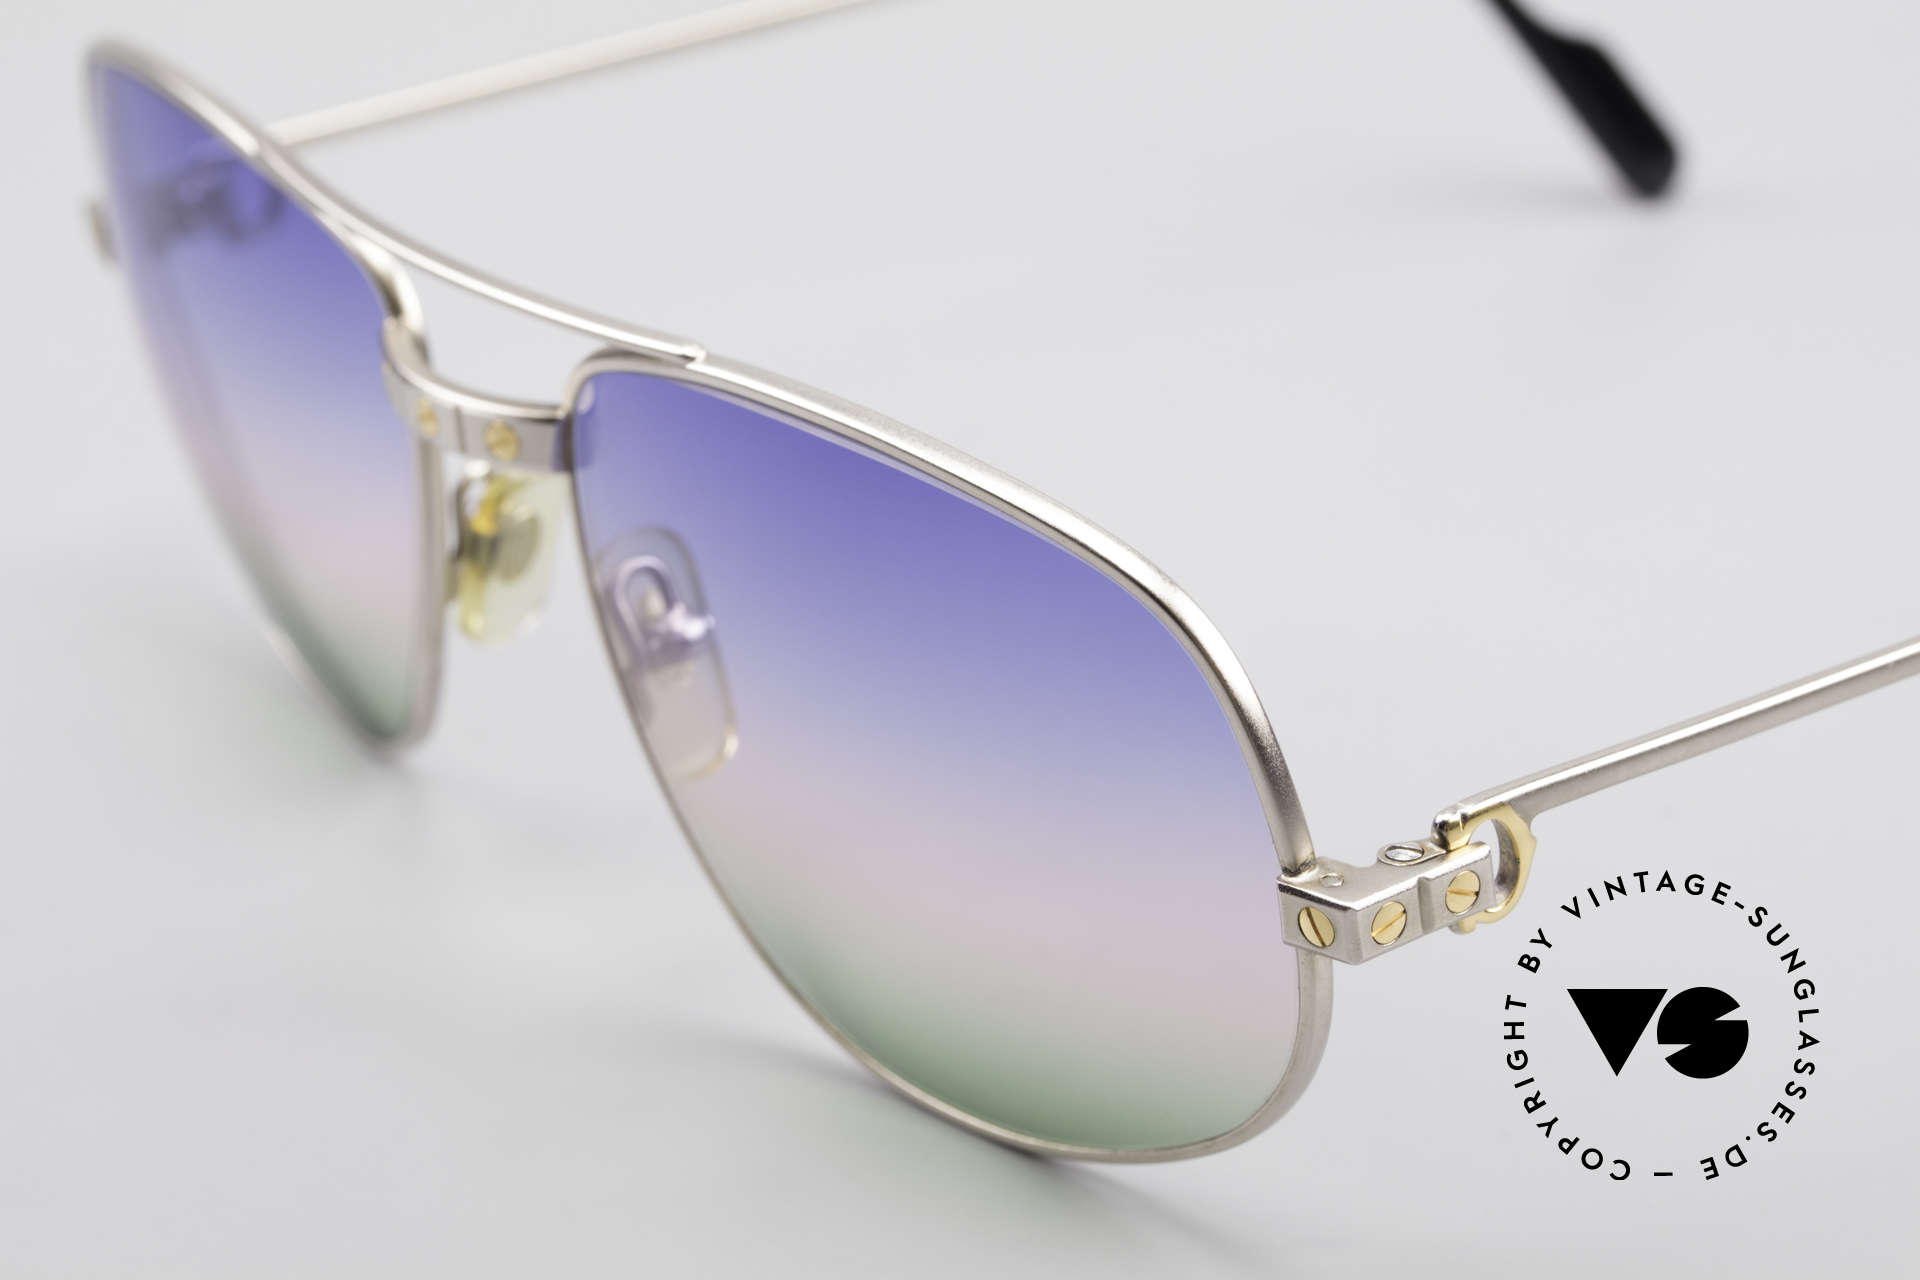 Cartier Romance Santos - L Palladium Shades Tricolored, 2nd hand, but in a mint condition (incl. GUCCI case), Made for Men